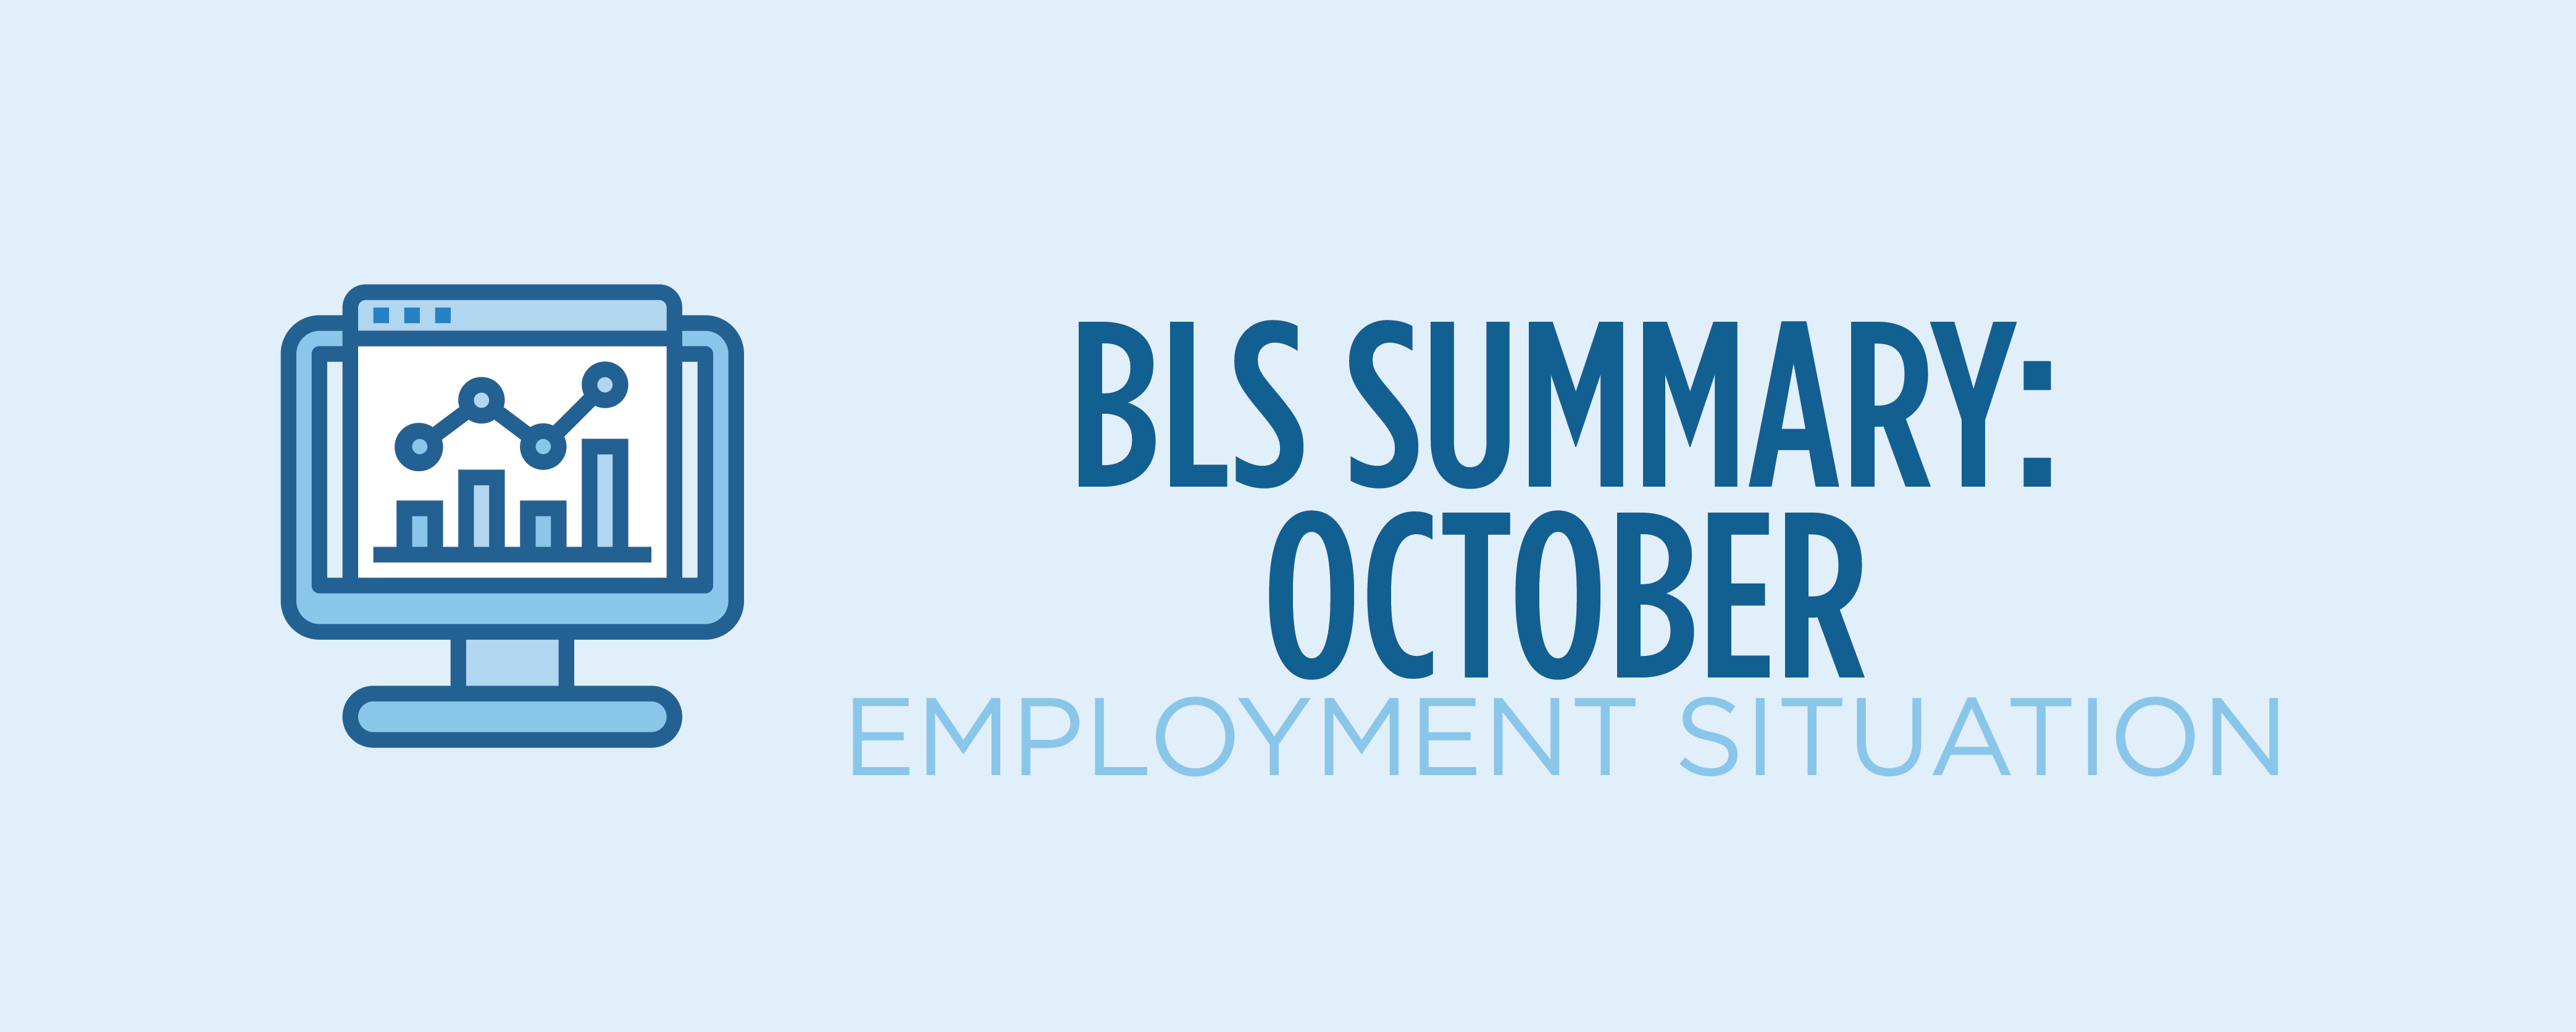 bls summary october employment situation